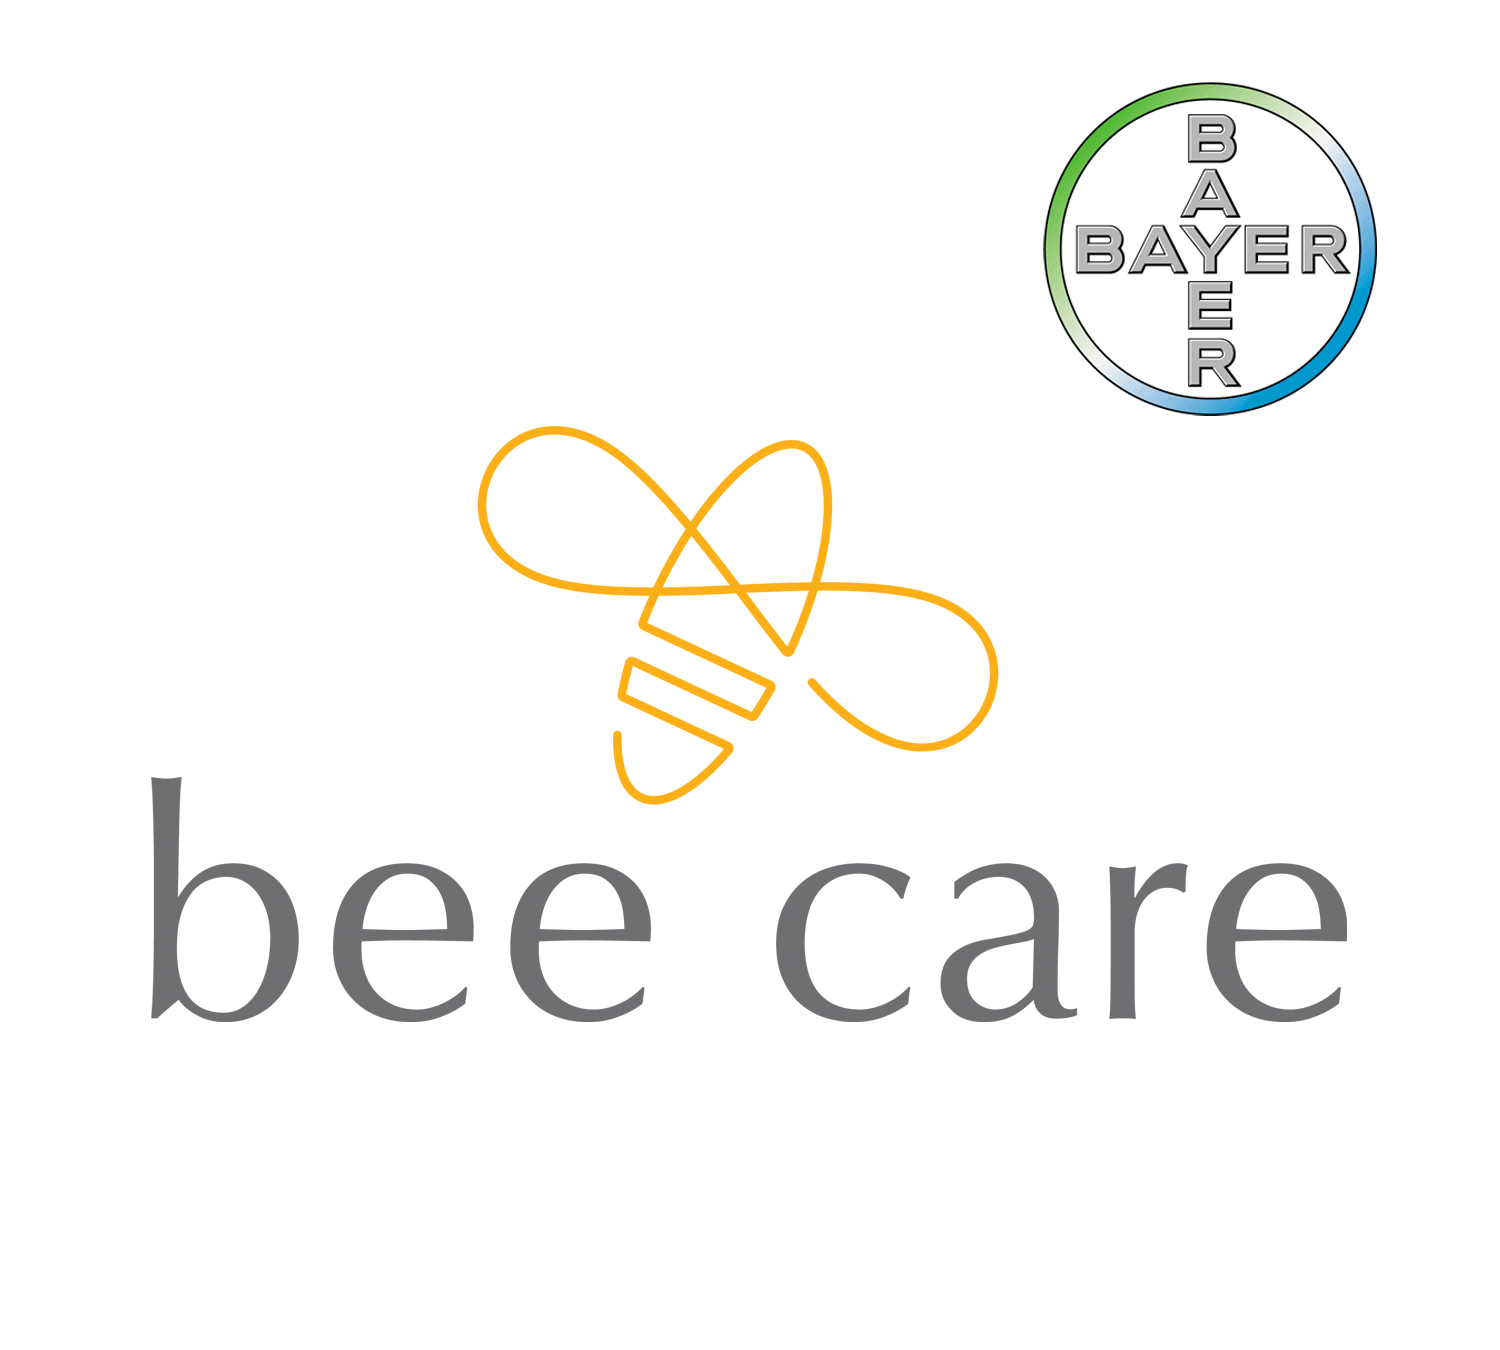 http://abfnet.org/associations/10537/files/Bee%20Care%20Logo%20and%20Bayer%20Logo.jpg